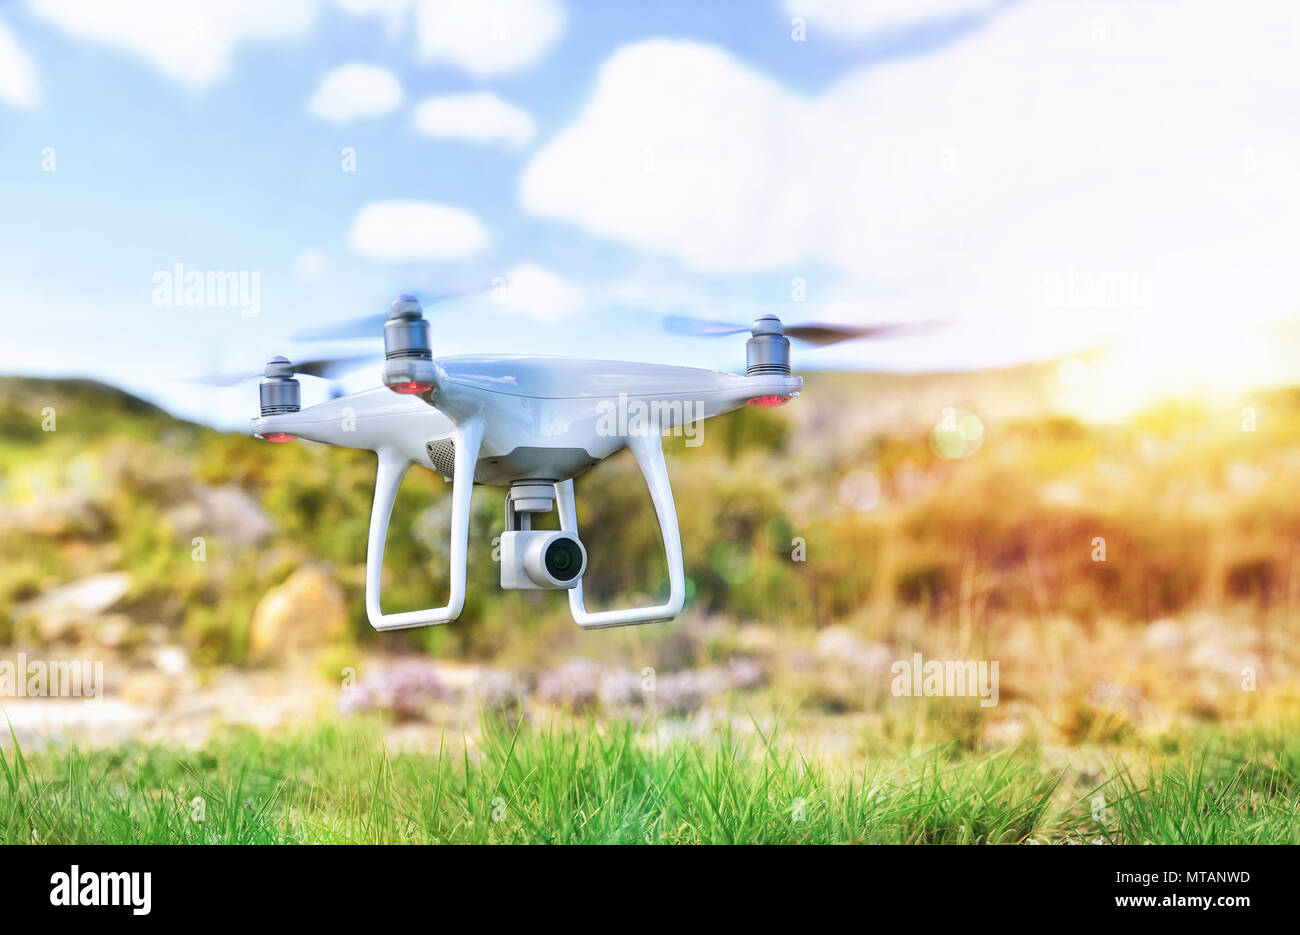 Drone remote control with camera for photo and video recording and remote control fpv flying. - Stock Image